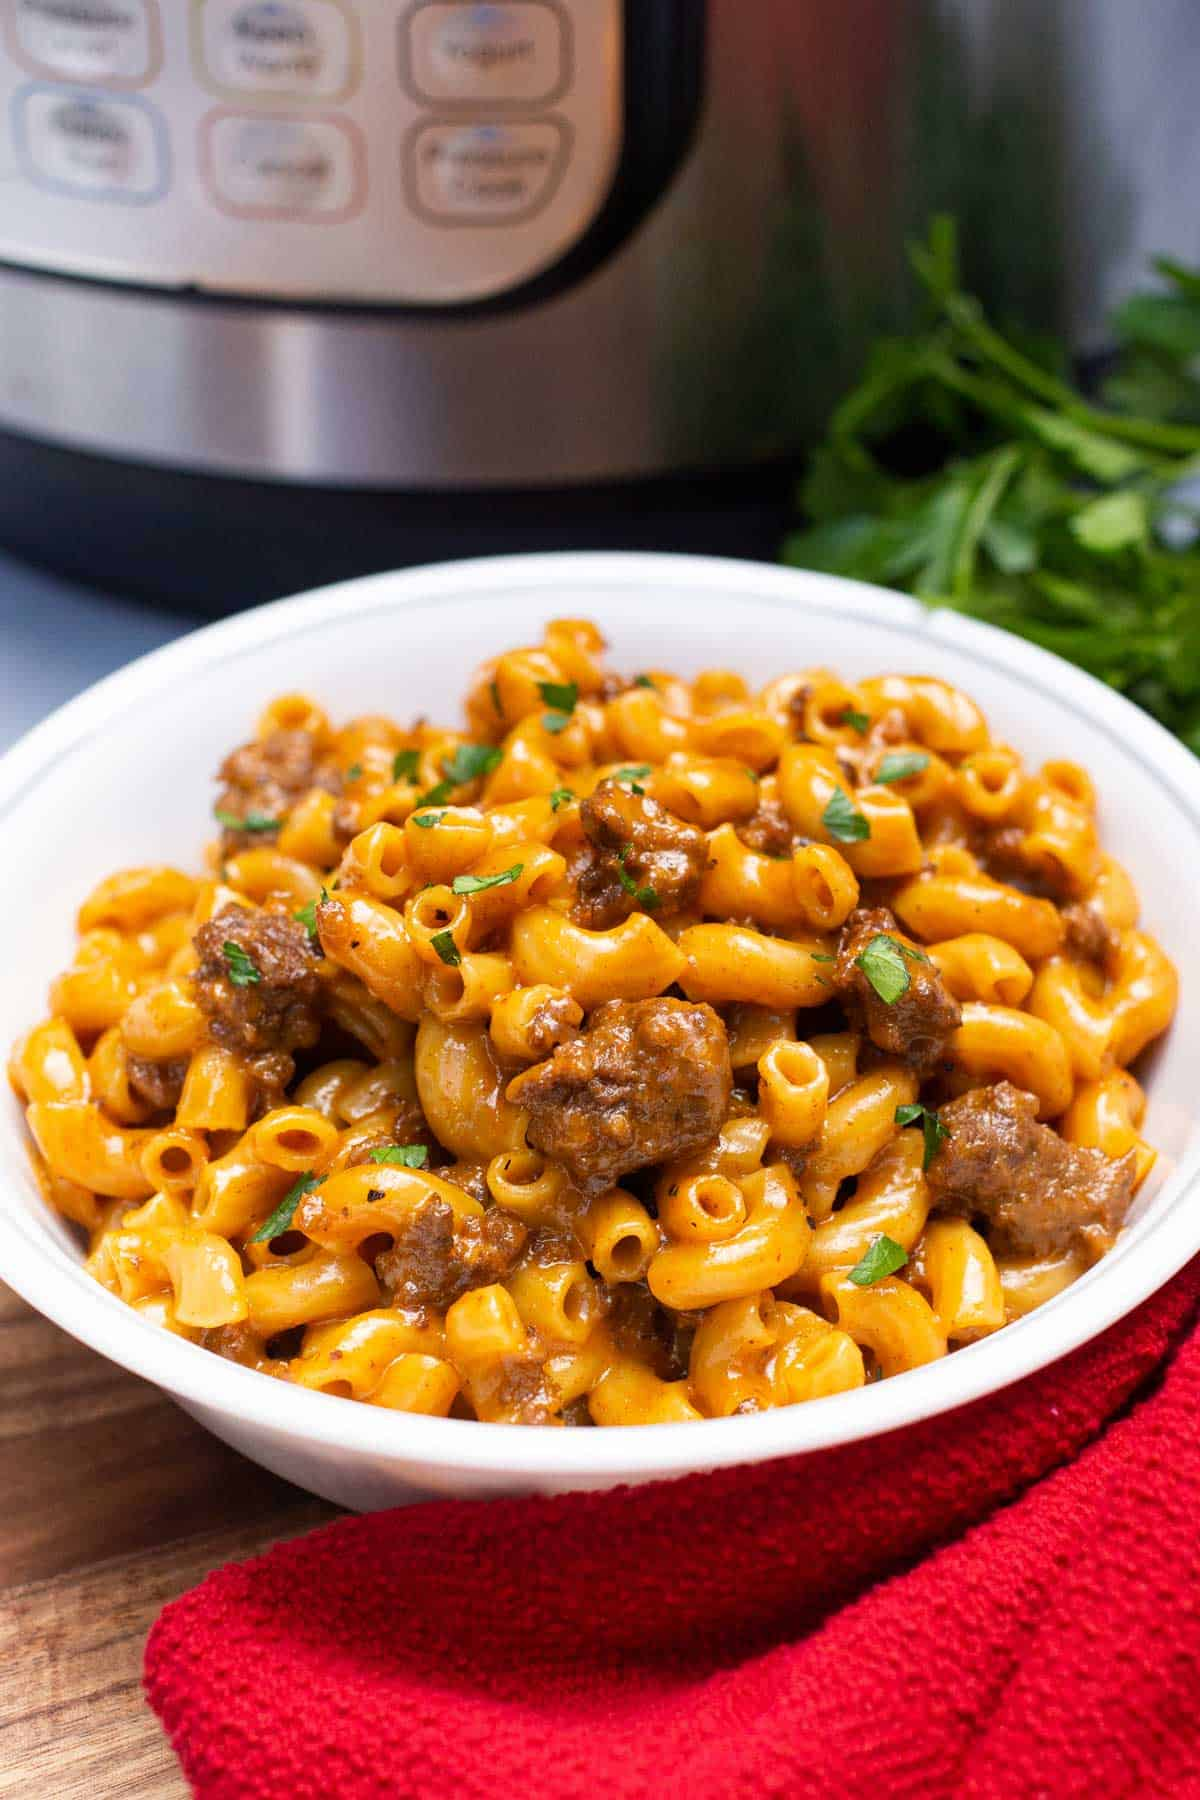 Bowl of Instant Pot Cheeseburger Macaroni garnished with fresh parsley.